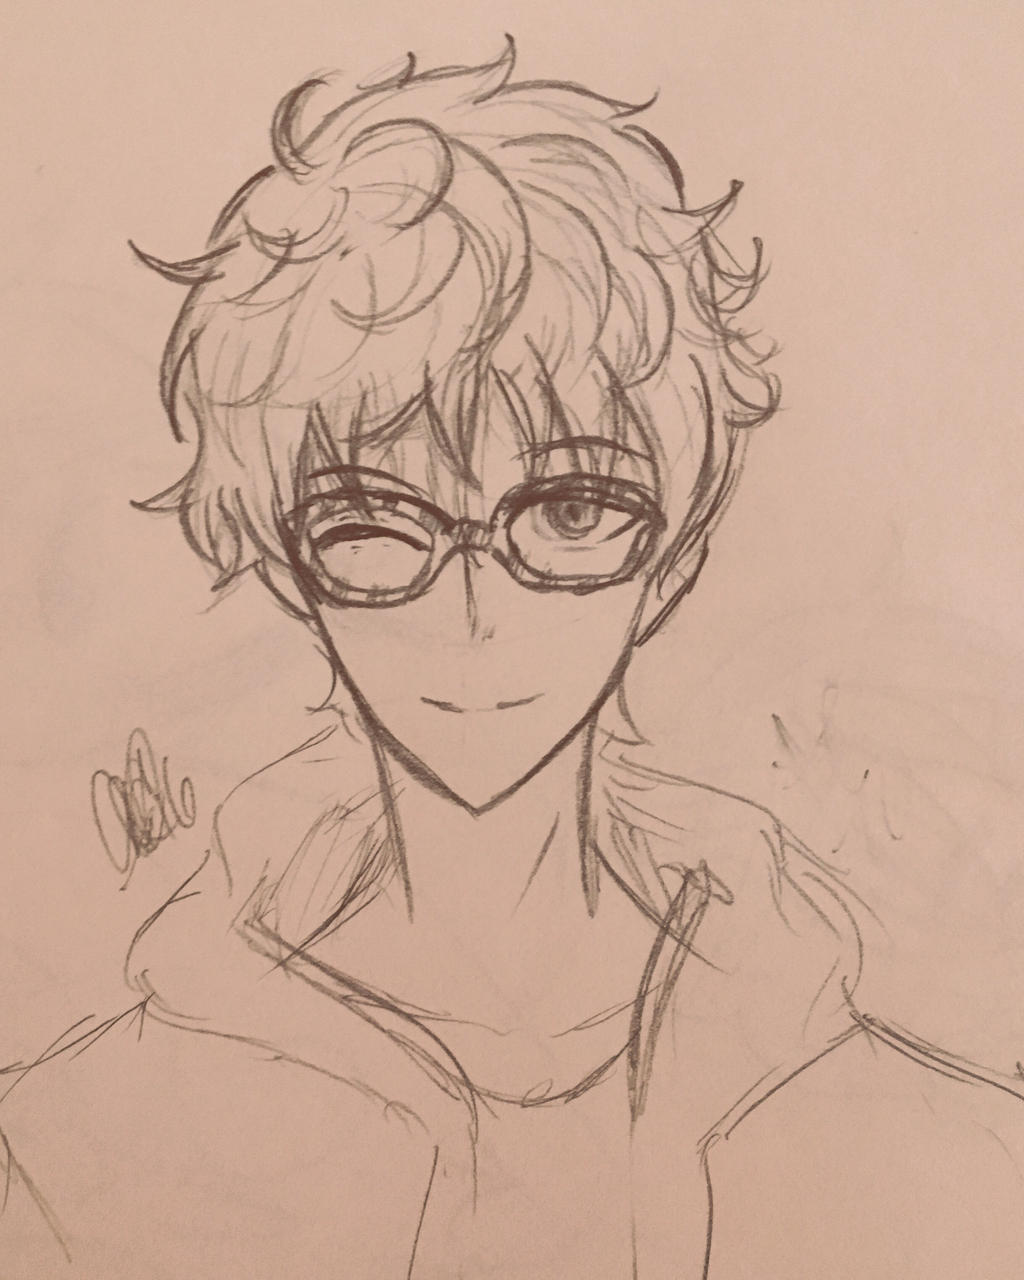 707 Mystic Messenger  by Ailizerbee08